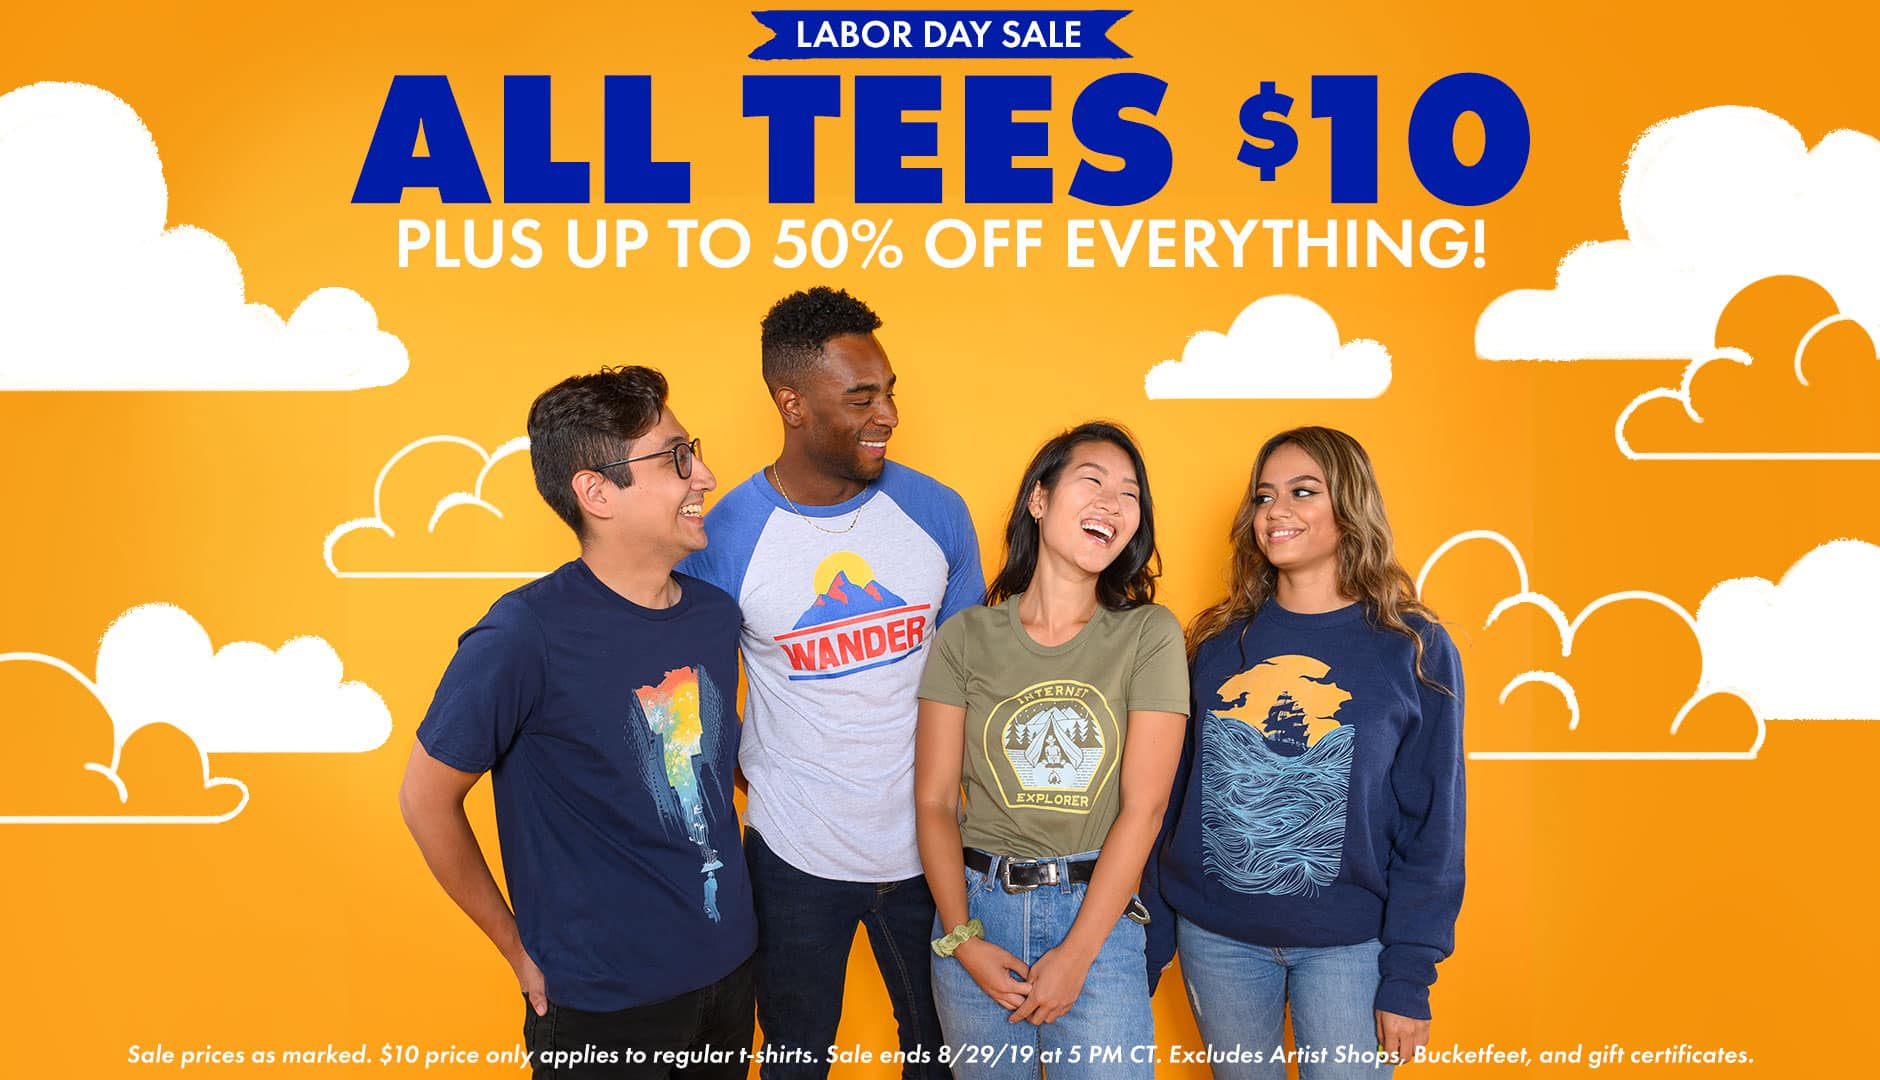 Shop the Threadless Labor Day Sale! $10 Regular Tees plus up to 50% off everything else!